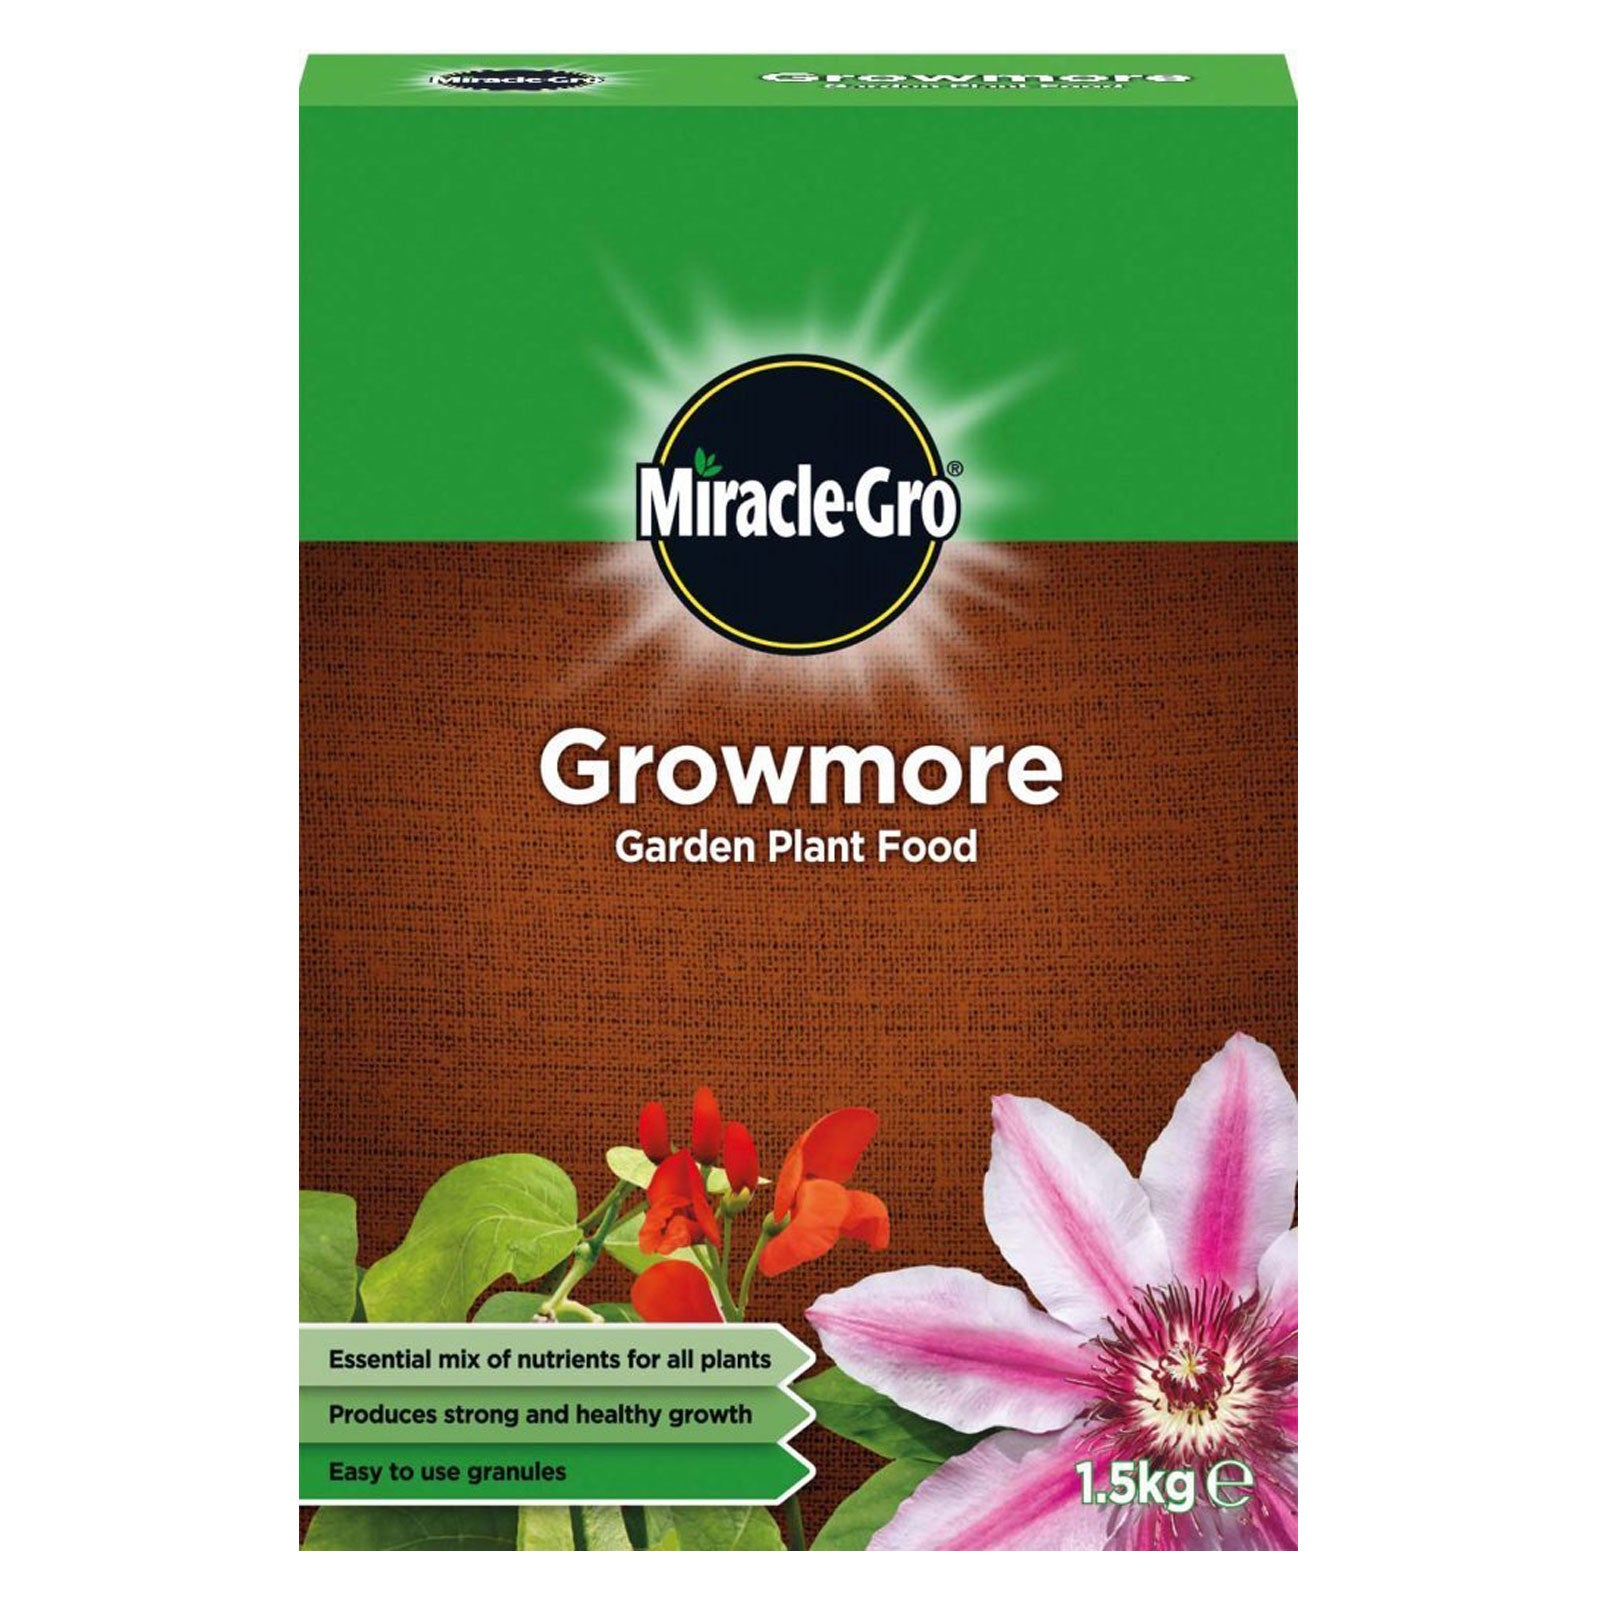 Miracle-Gro Growmore Garden Plant Food Granules 1.5kg Strong Healthy Growth